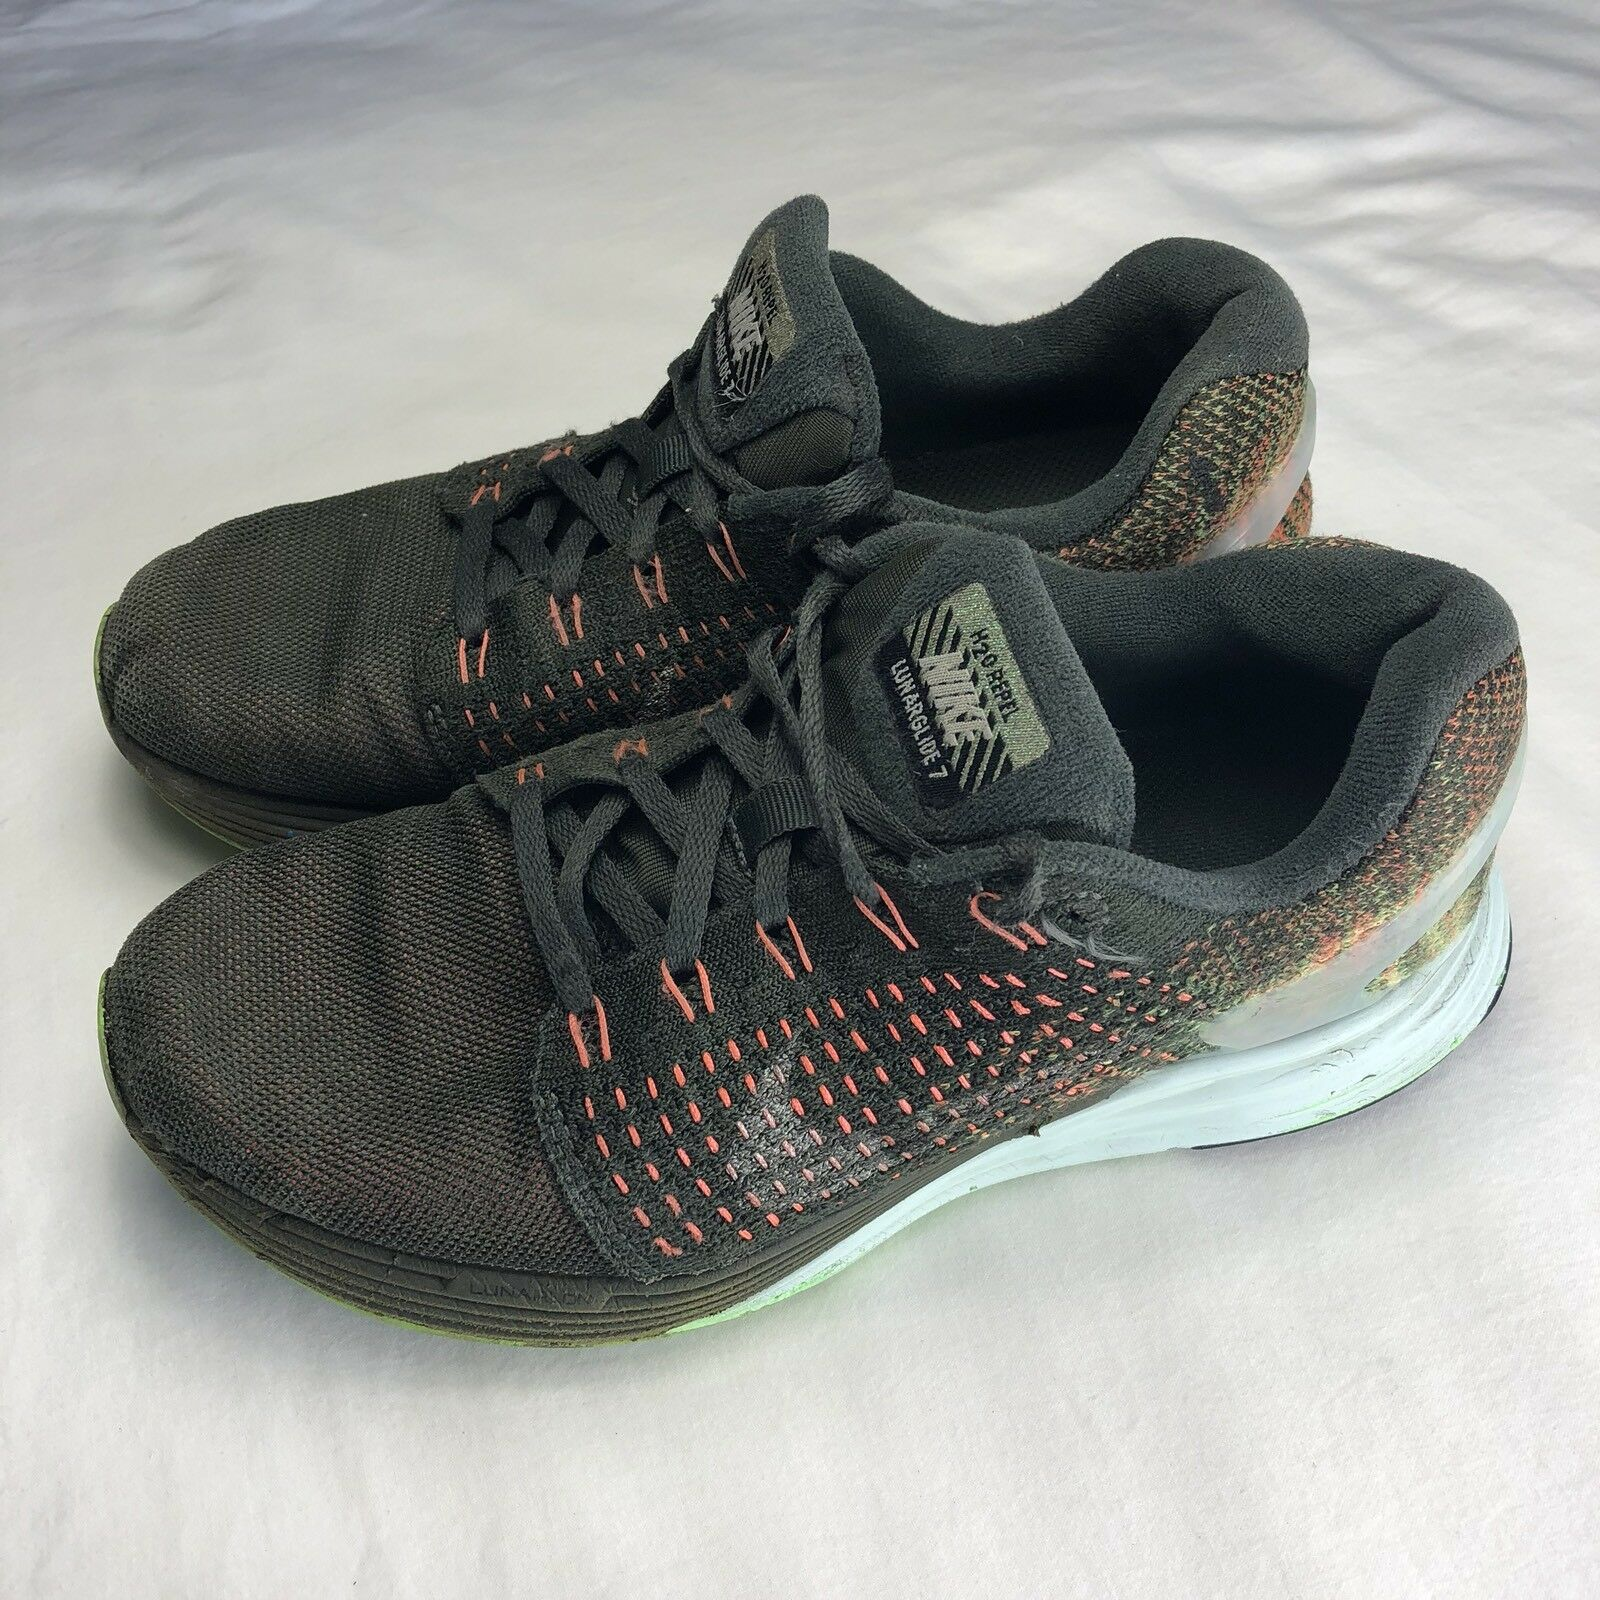 NIKE LUNARGLIDE 7 SHIELD Dark Loden Volt H2O Repel Running Shoes 6.5 Athletic best-selling model of the brand